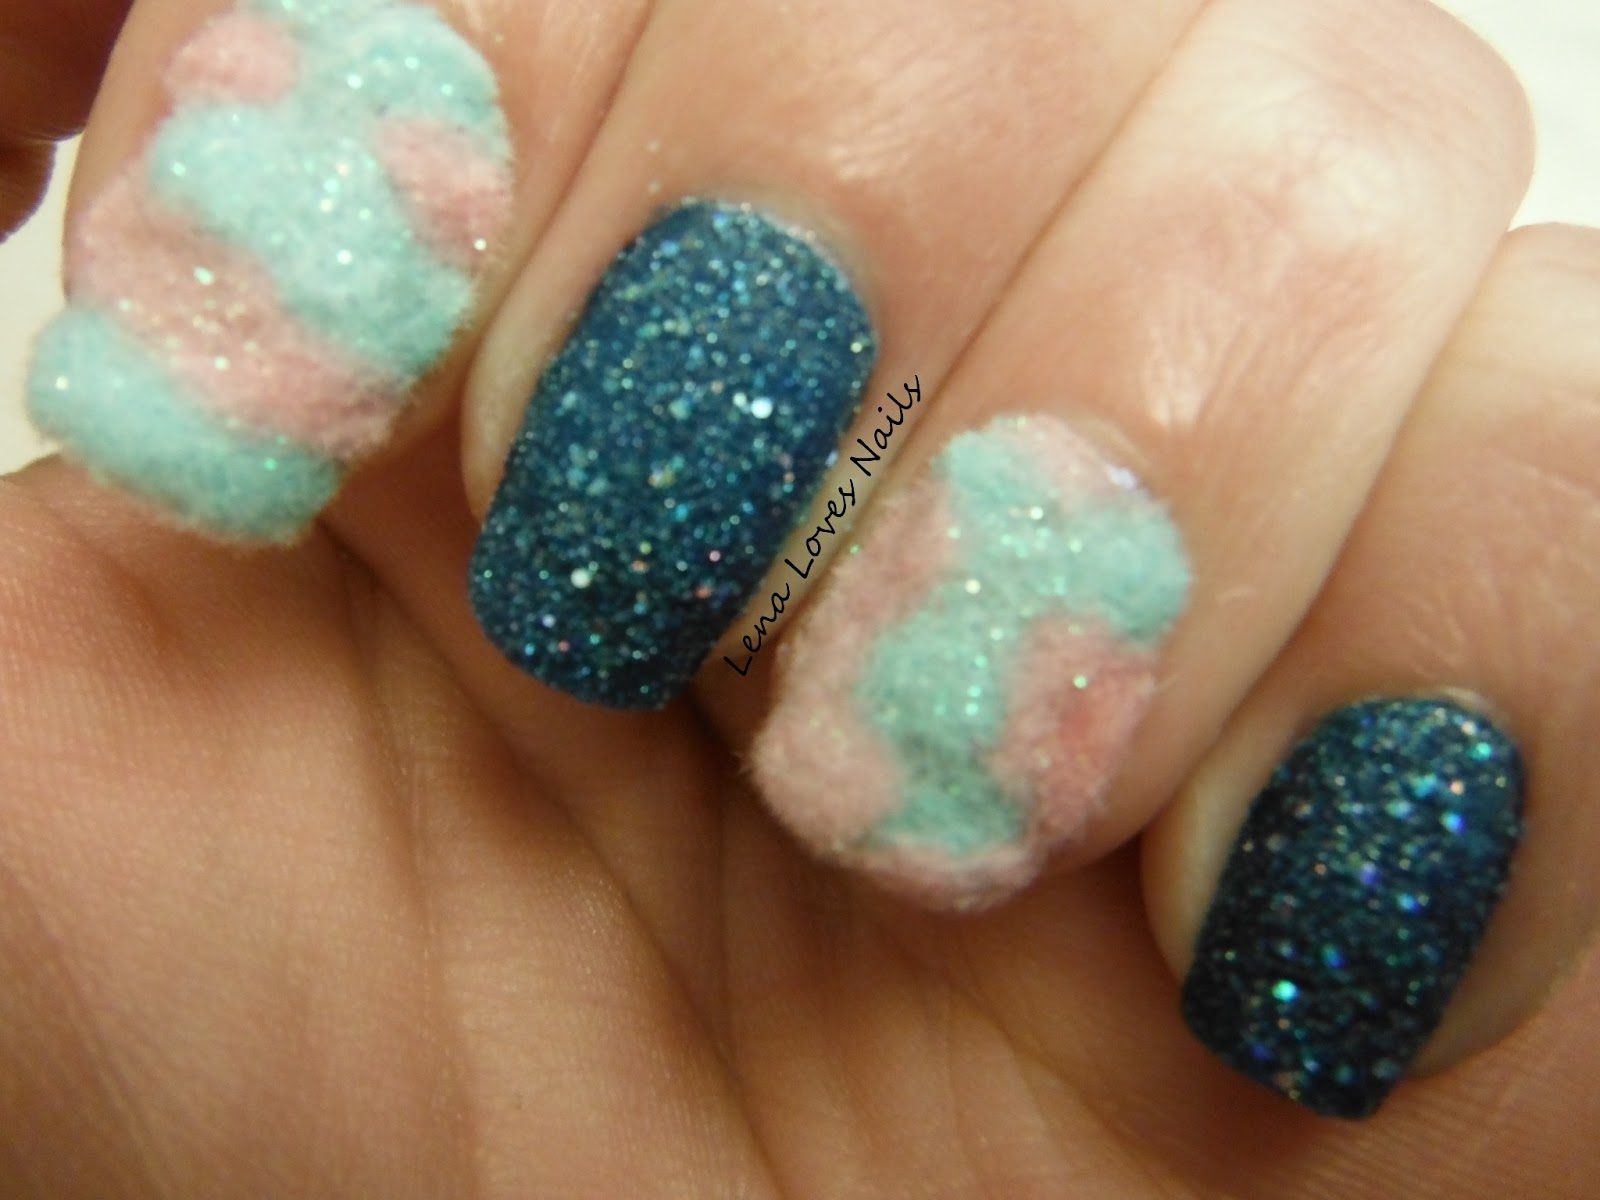 Lena Loves Nails: Cotton and Rock Candy Nails!